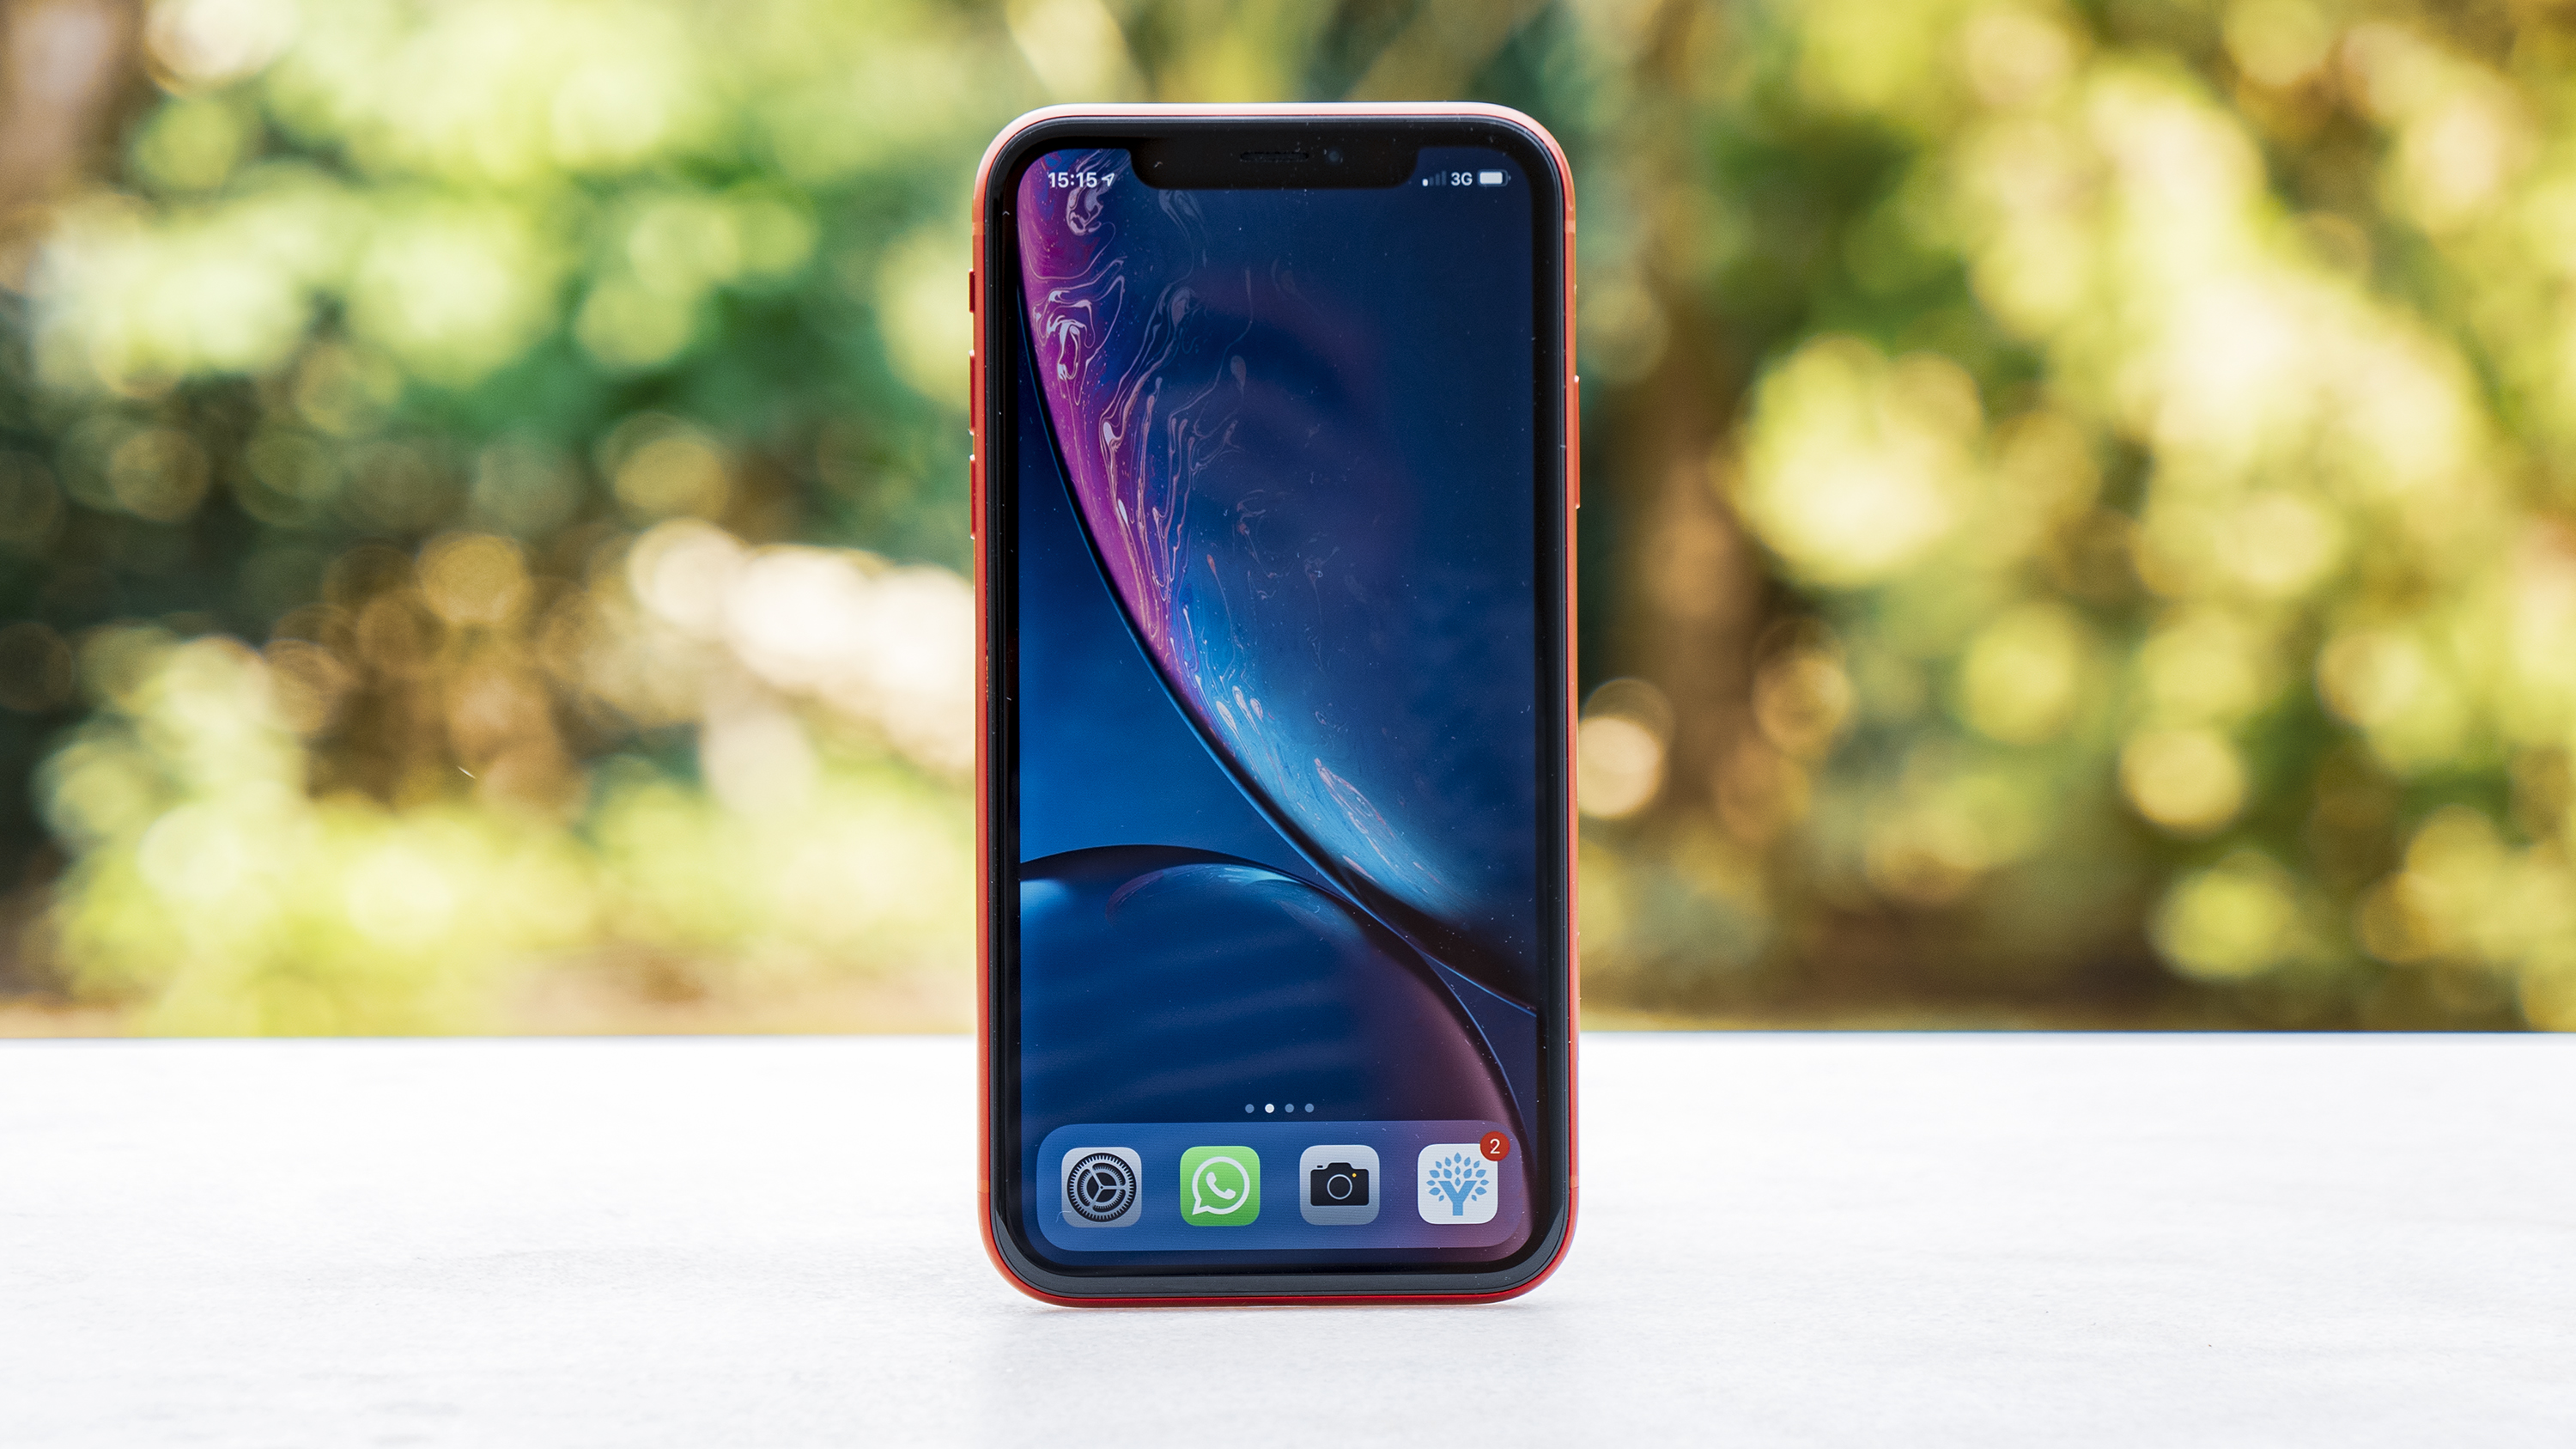 Apple iPhone XR now starts at Rs 59,900 in India after a